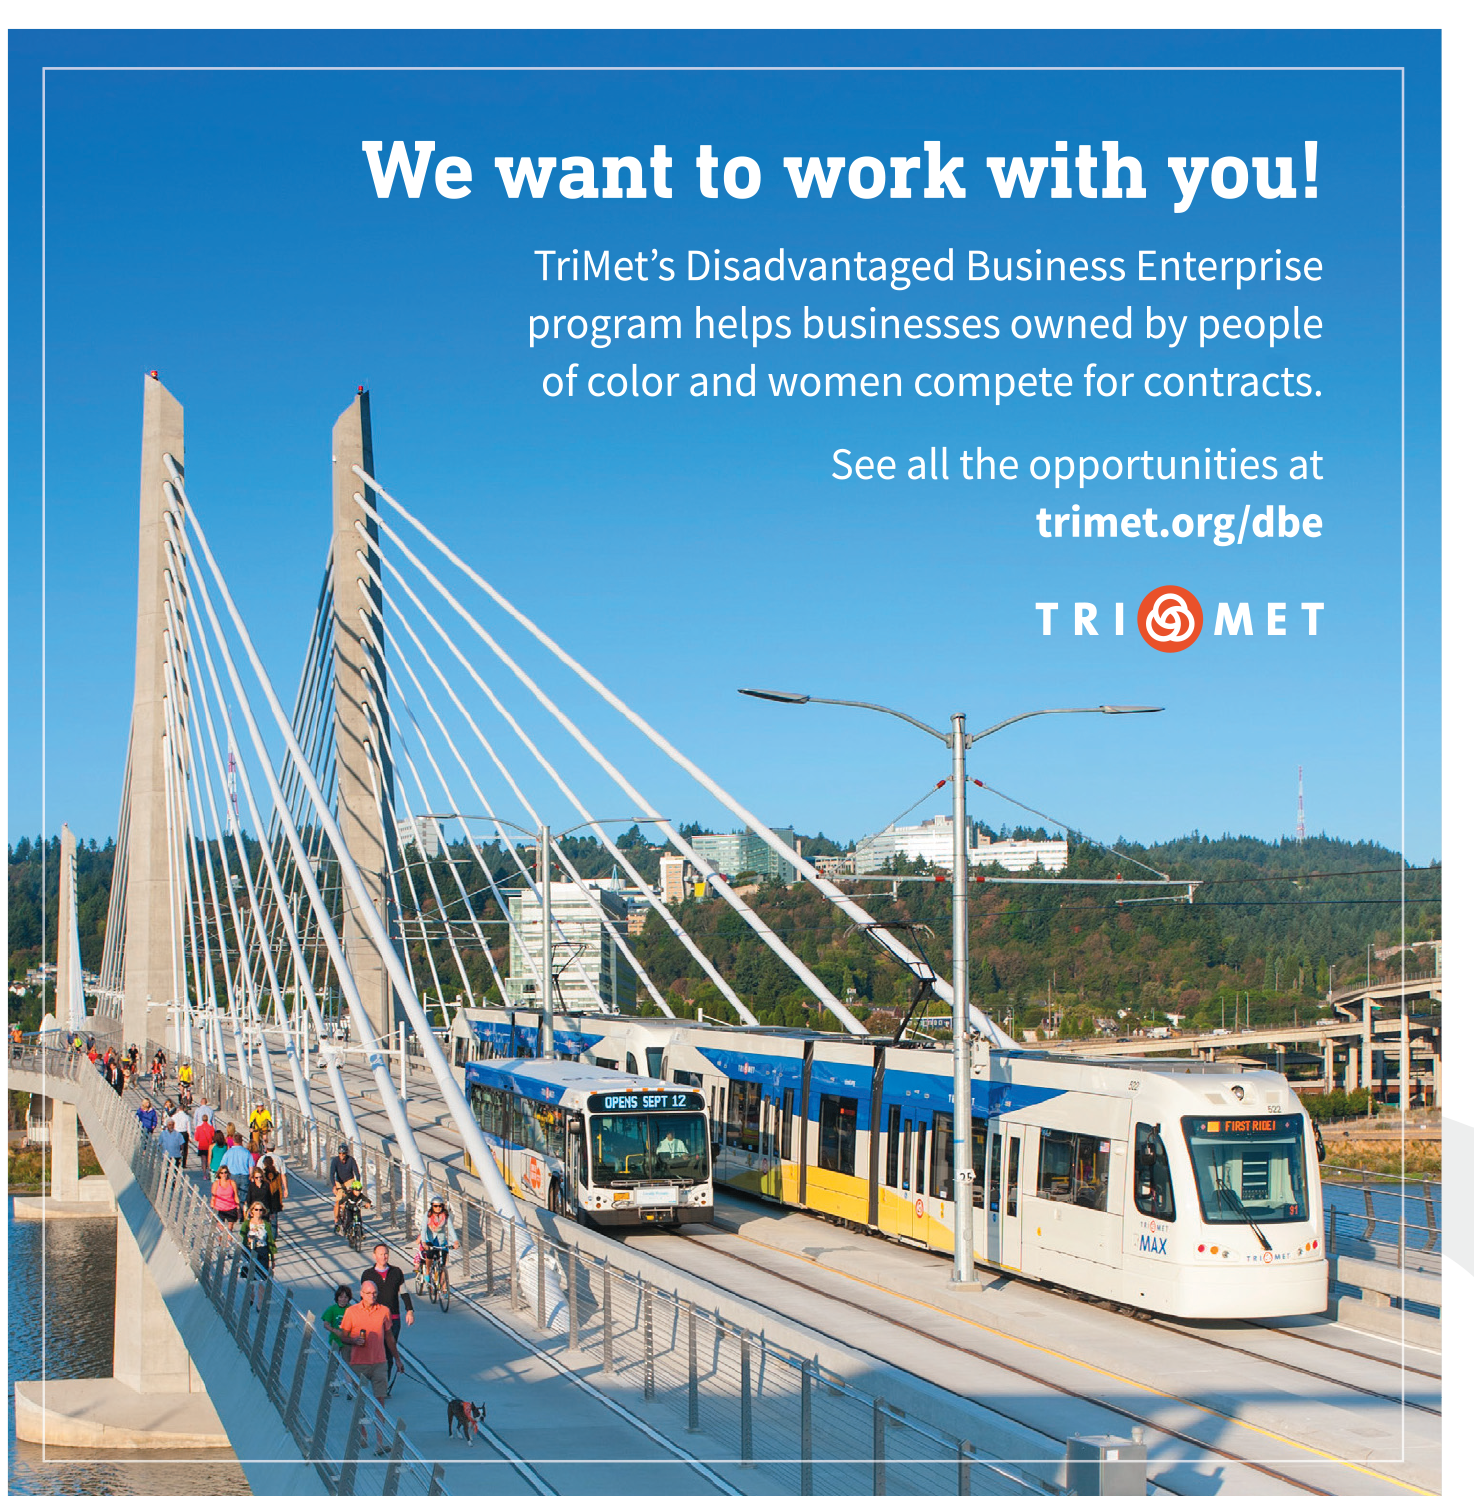 Trimet_opportunitymagazine_ad_march2019